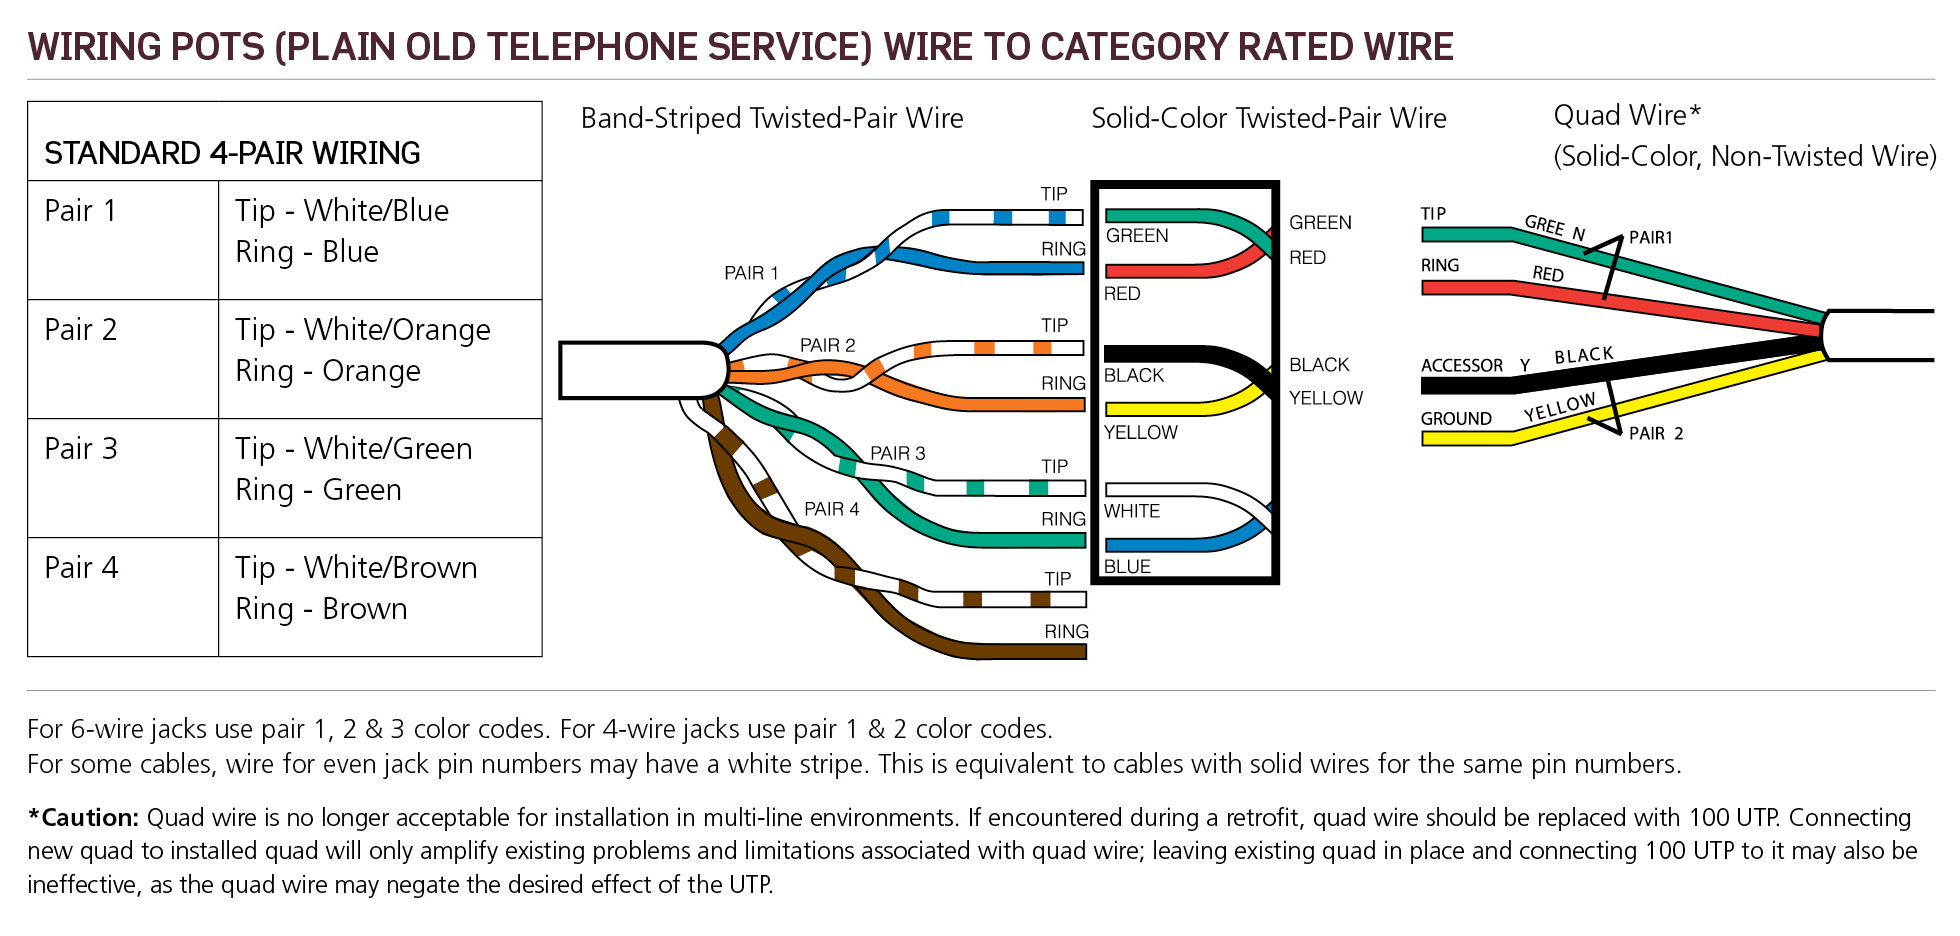 dsl phone wiring wiring diagram blog digital audio wiring diagram digital phone wiring diagram [ 1960 x 936 Pixel ]